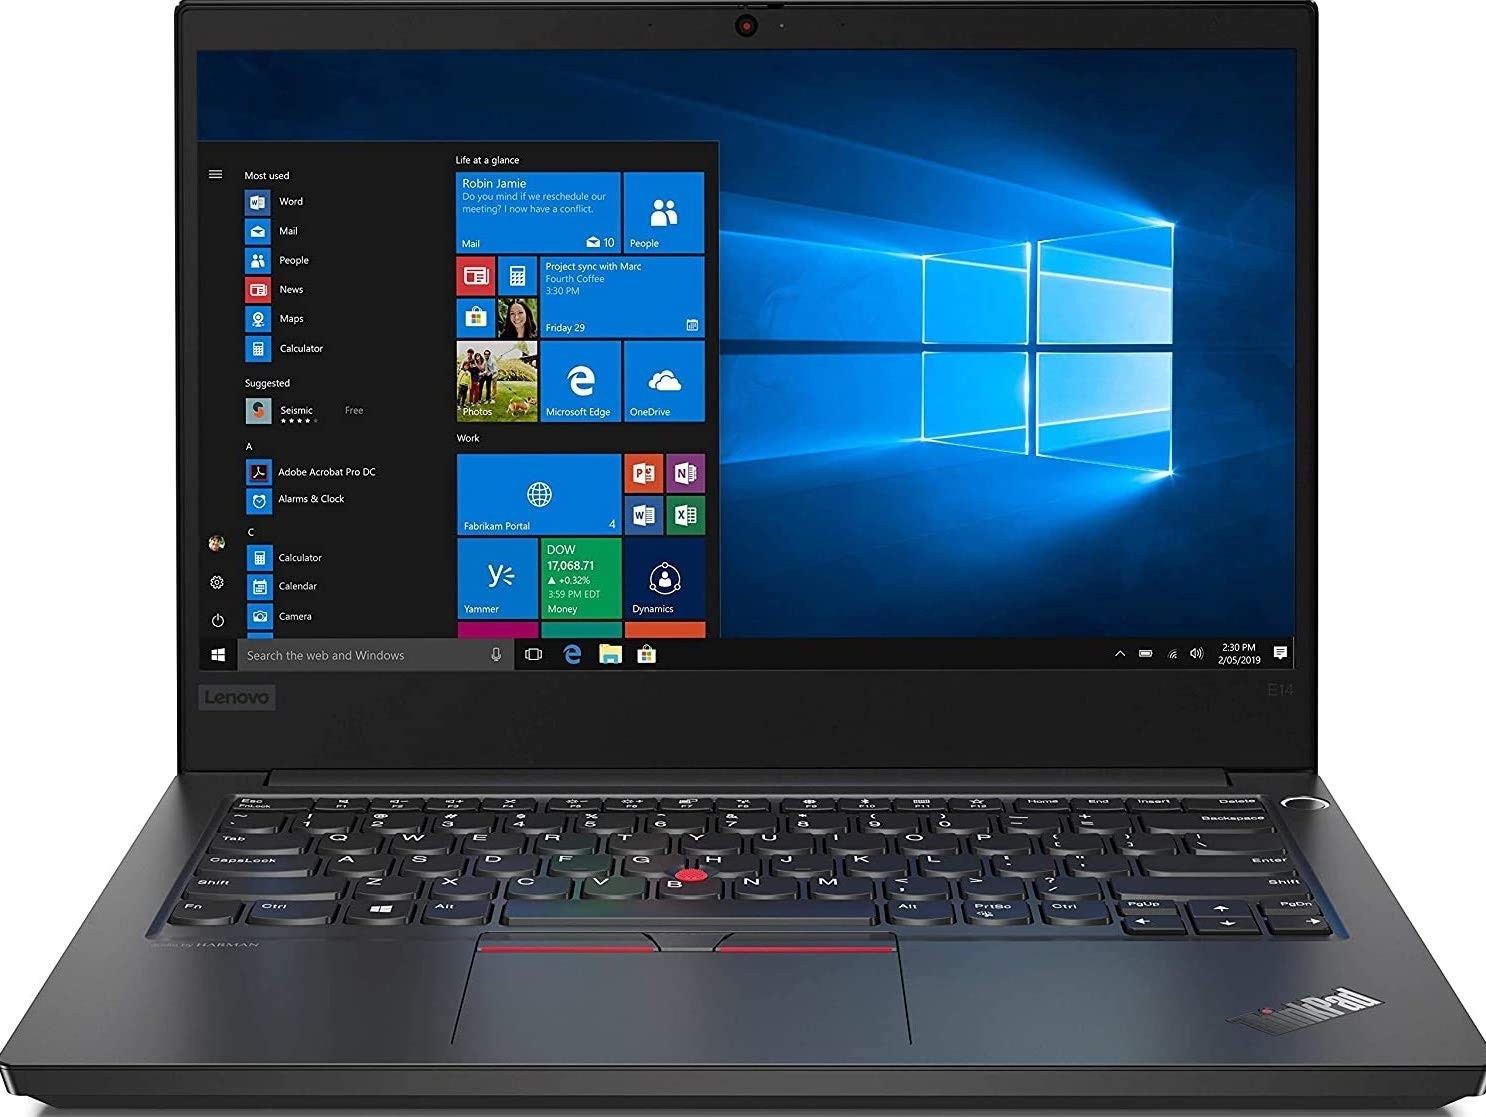 Refurbished laptops & desktops - Lenovo Thinkpad E14 Intel Core I5 10TH Gen 14-Inch Full HD Ips Thin And Light Laptop (8GB RAM/ 1TB HDD + 128GB SSD/ Windows 10 Home/ Black/ 1.69Kg), 20Ras0W500